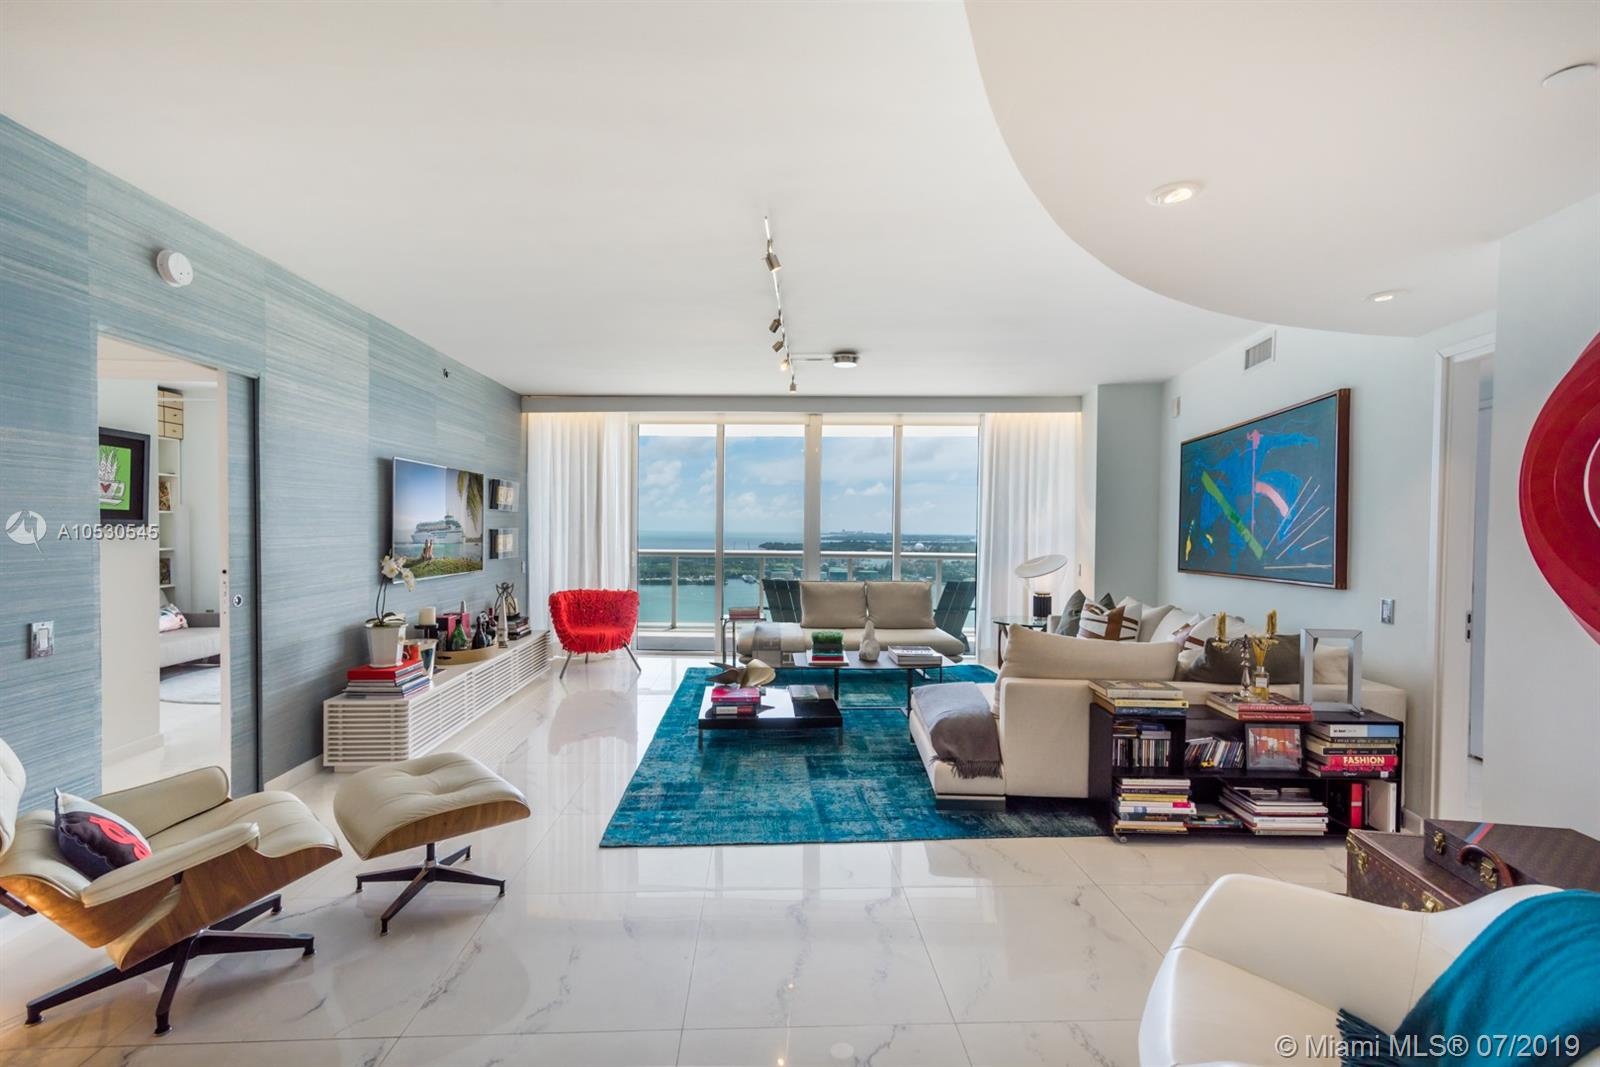 This Completely Renovated Icon South Beach Condo Offers An Expansive 2, 158 Square Foot Floor-Plan With Ocean, Bay And City Views. Three Bedrooms And Three Bathrooms Tastefully Designed And Ready To Call Home. Enjoy The Expansive Indoor And Outdoor Living Spaces, Perfect For Entertaining. With A Full List Of First Class Amenities, 24 Hour Concierge And Complimentary Valet For All Of Your Guests, Icon Is One Of The Most Desirable Residential Buildings In The Prestigious South Of Fifth Neighborhood Of Miami Beach. This Is A Must See!